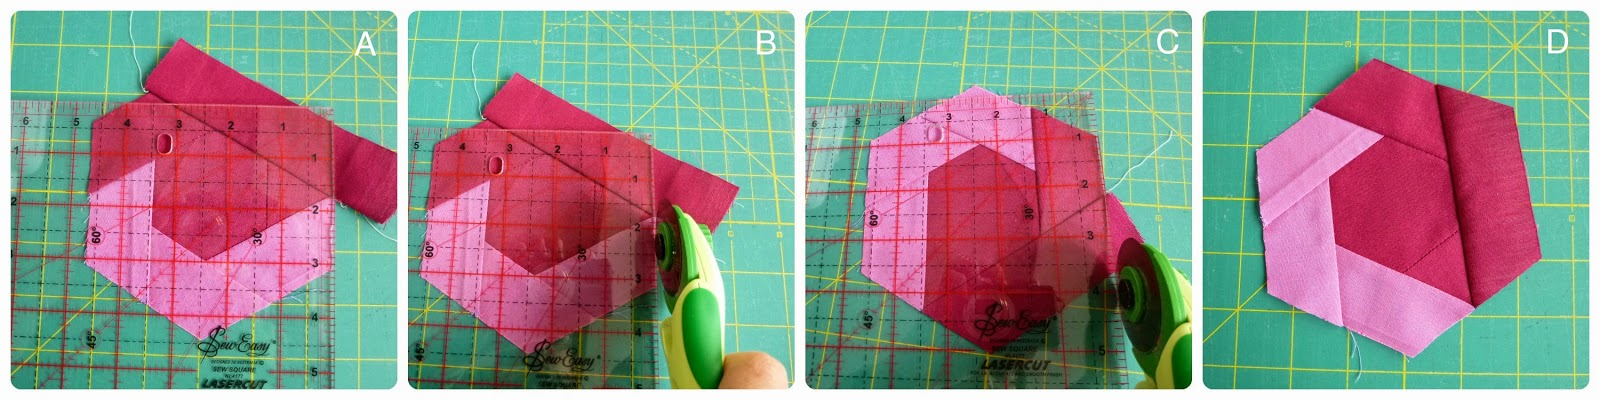 How to sew a log-cabin hexagon - can look like flowers or a great use of scraps.